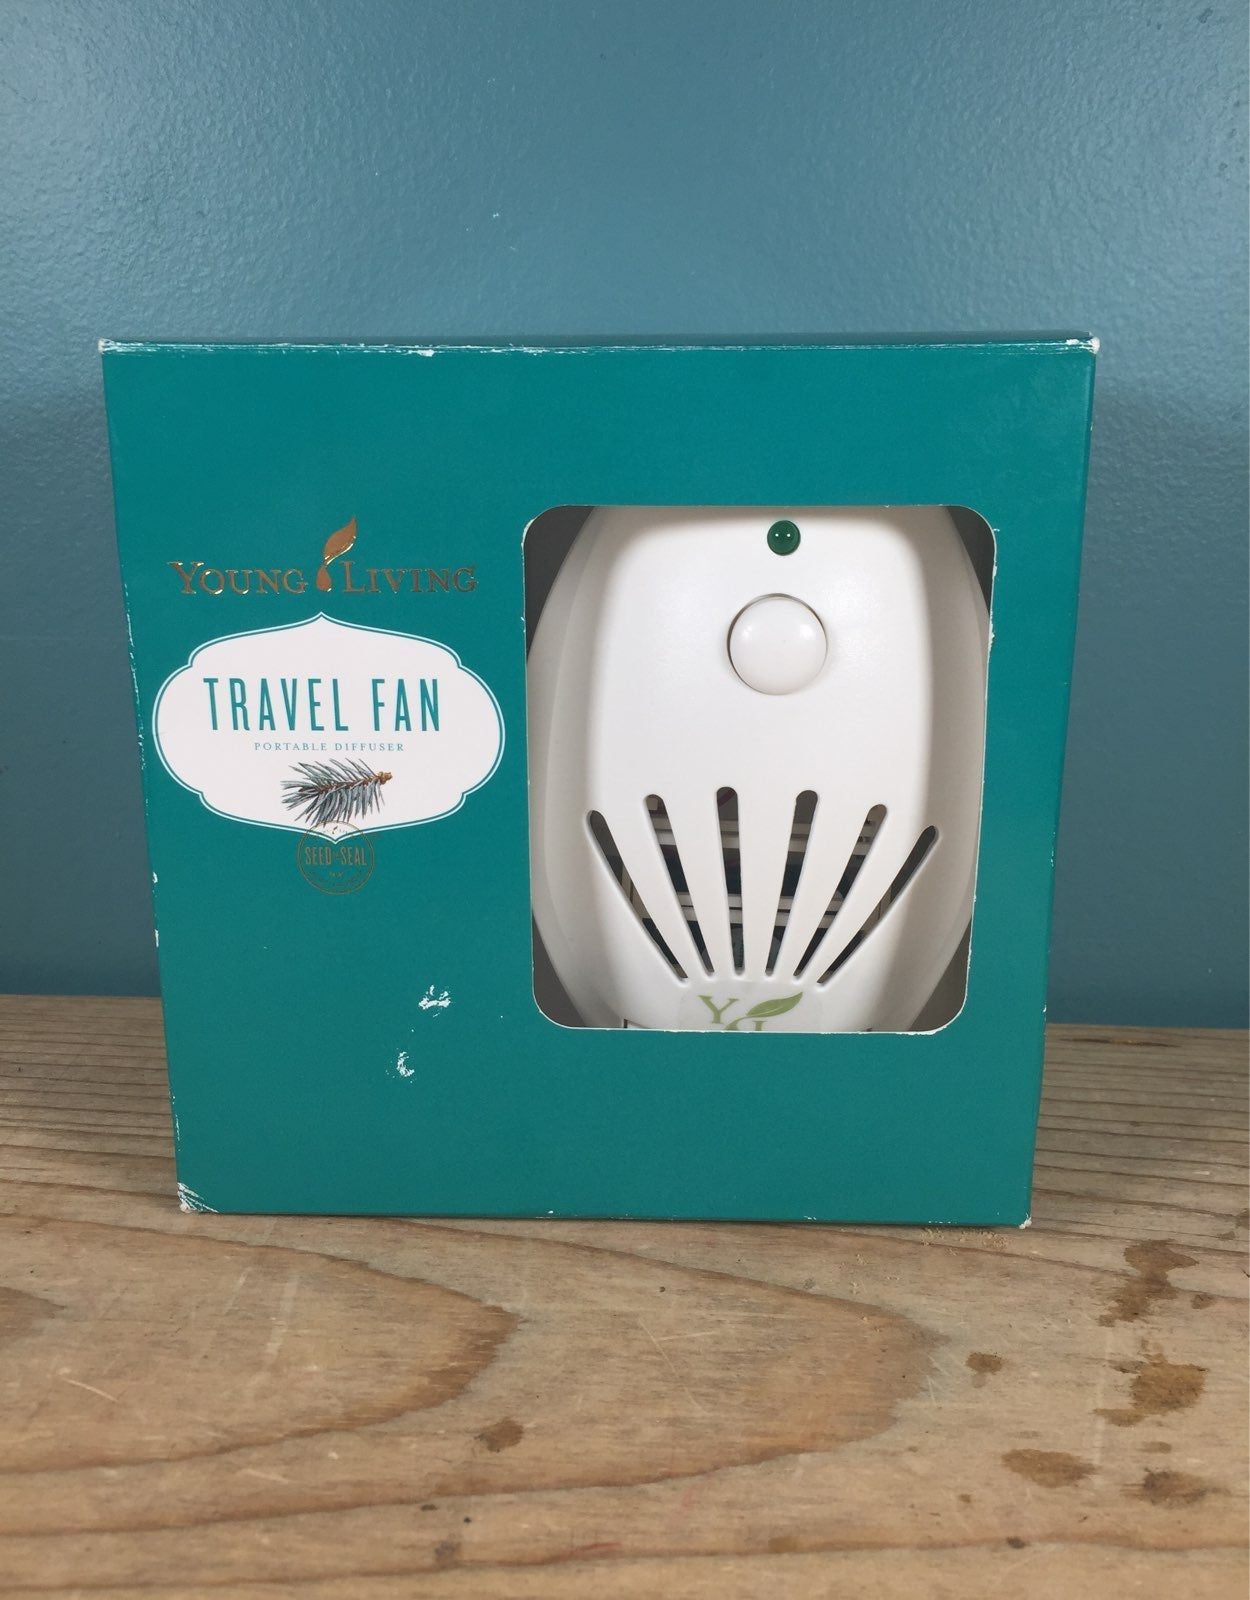 Young Living Trave Fan Diffuser